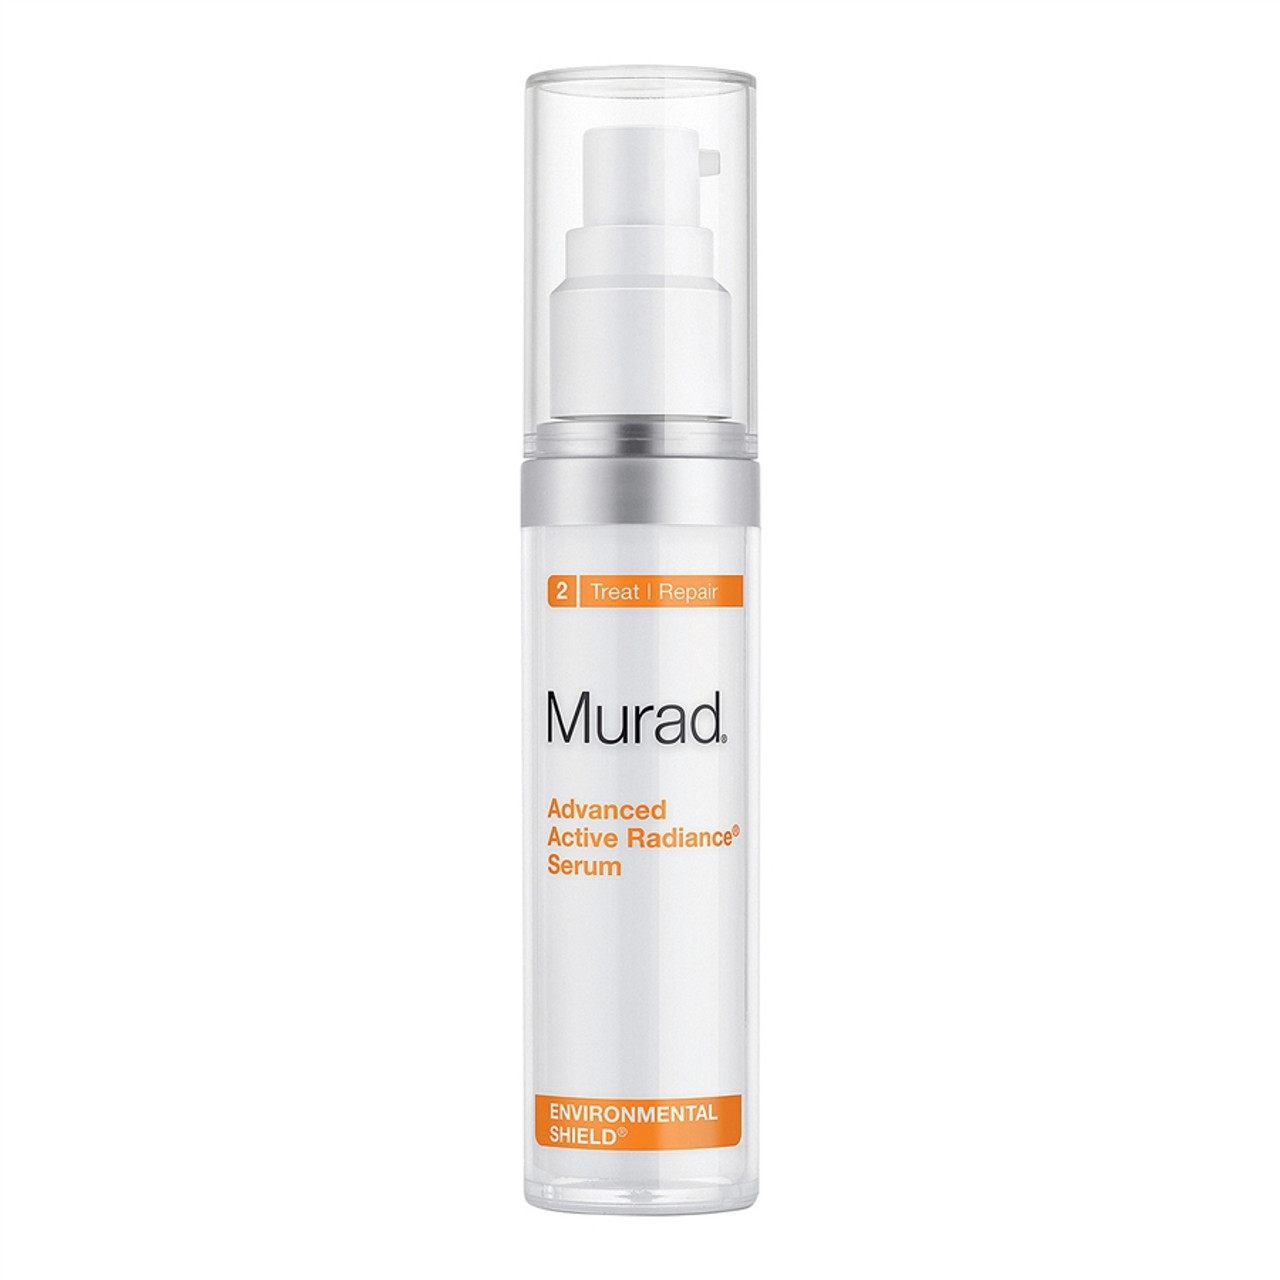 Murad Active Radiance Serum 1 oz